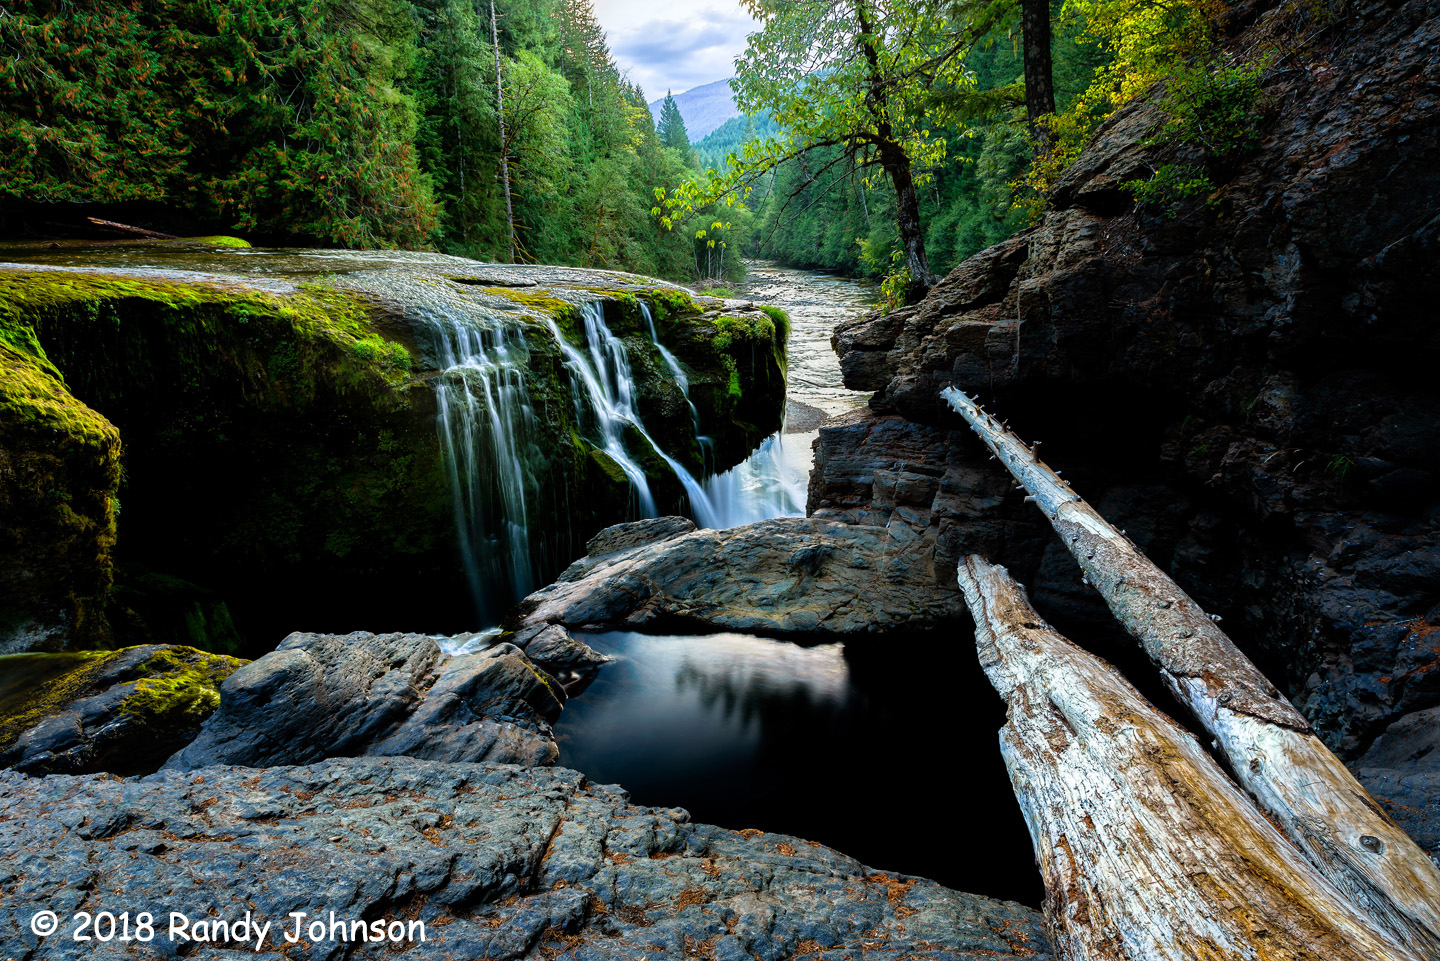 2nd Place Scenic - Lower Lewis River Falls by Randy Johnson